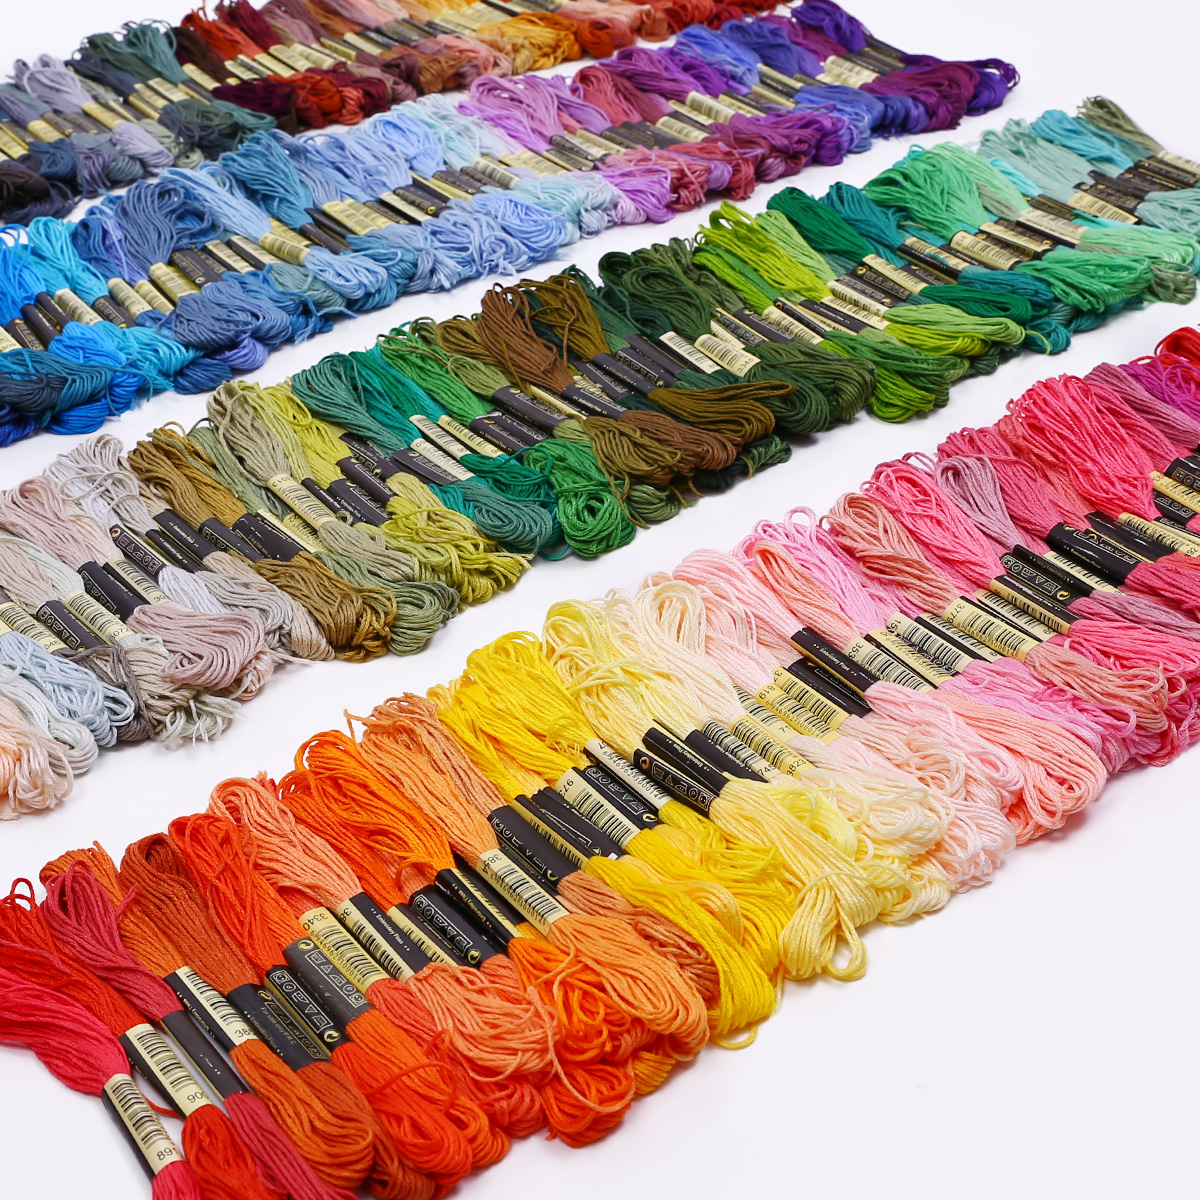 50-300-Color-Cross-Stitch-Thread-Embroidery-Floss-Sewing-Skeins-100-Cotton-Line thumbnail 3